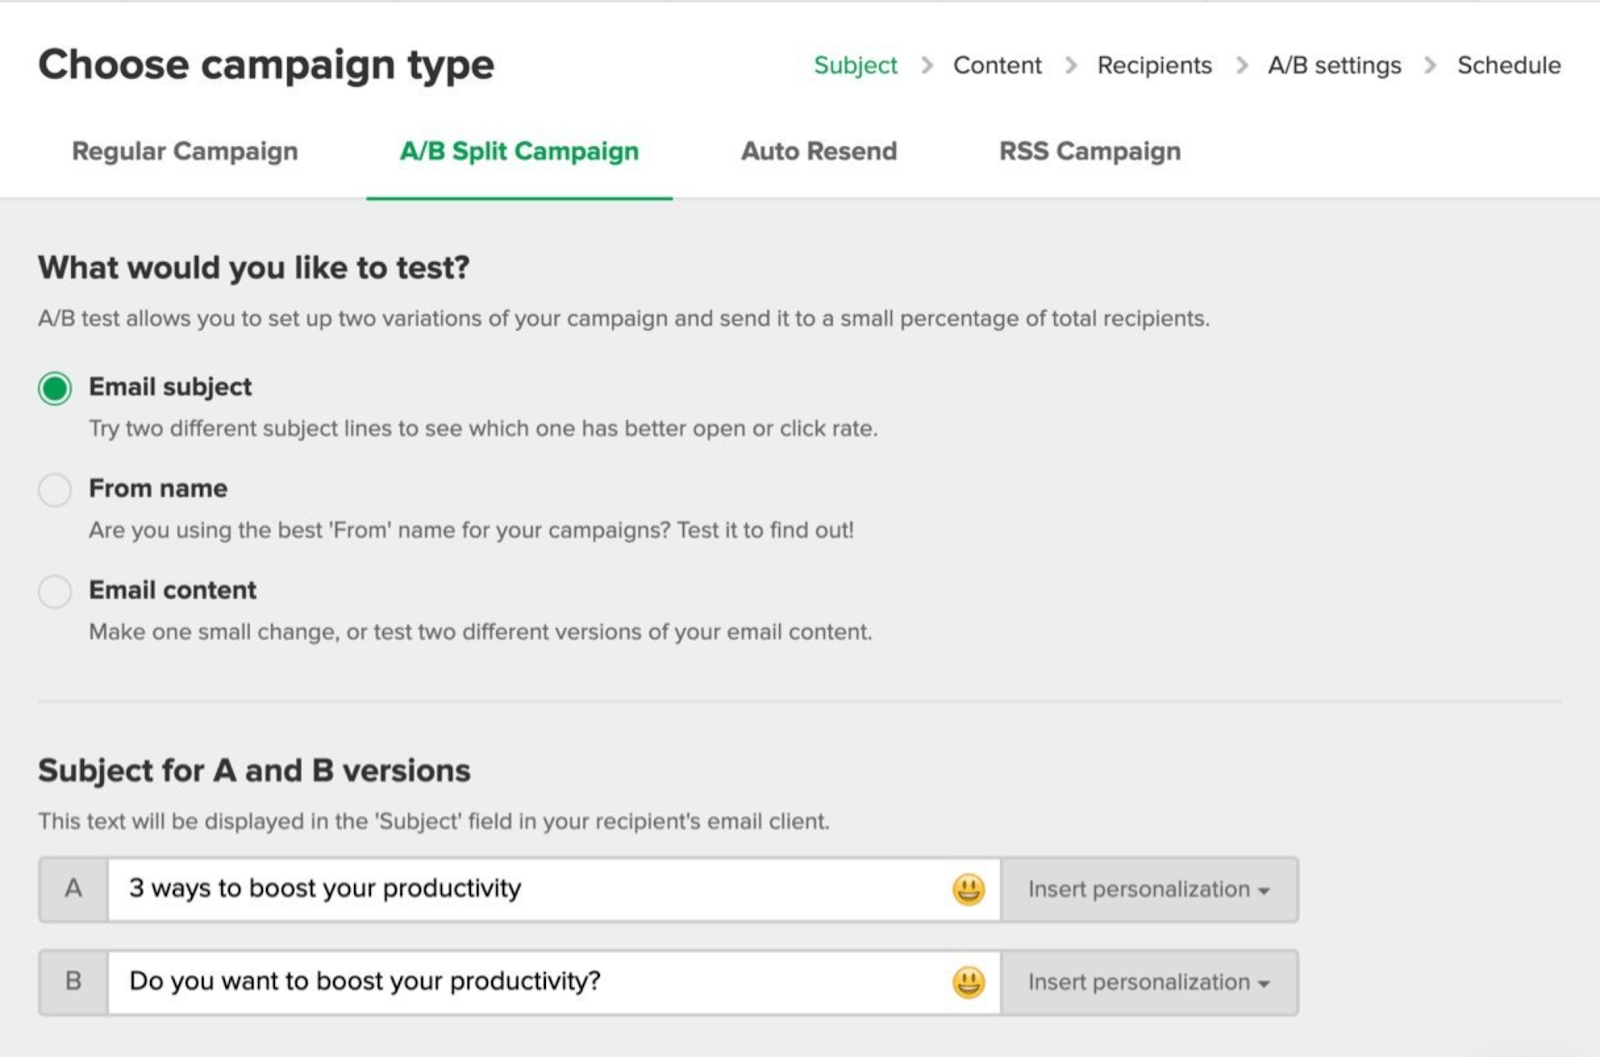 How to setup a a/b split campaign